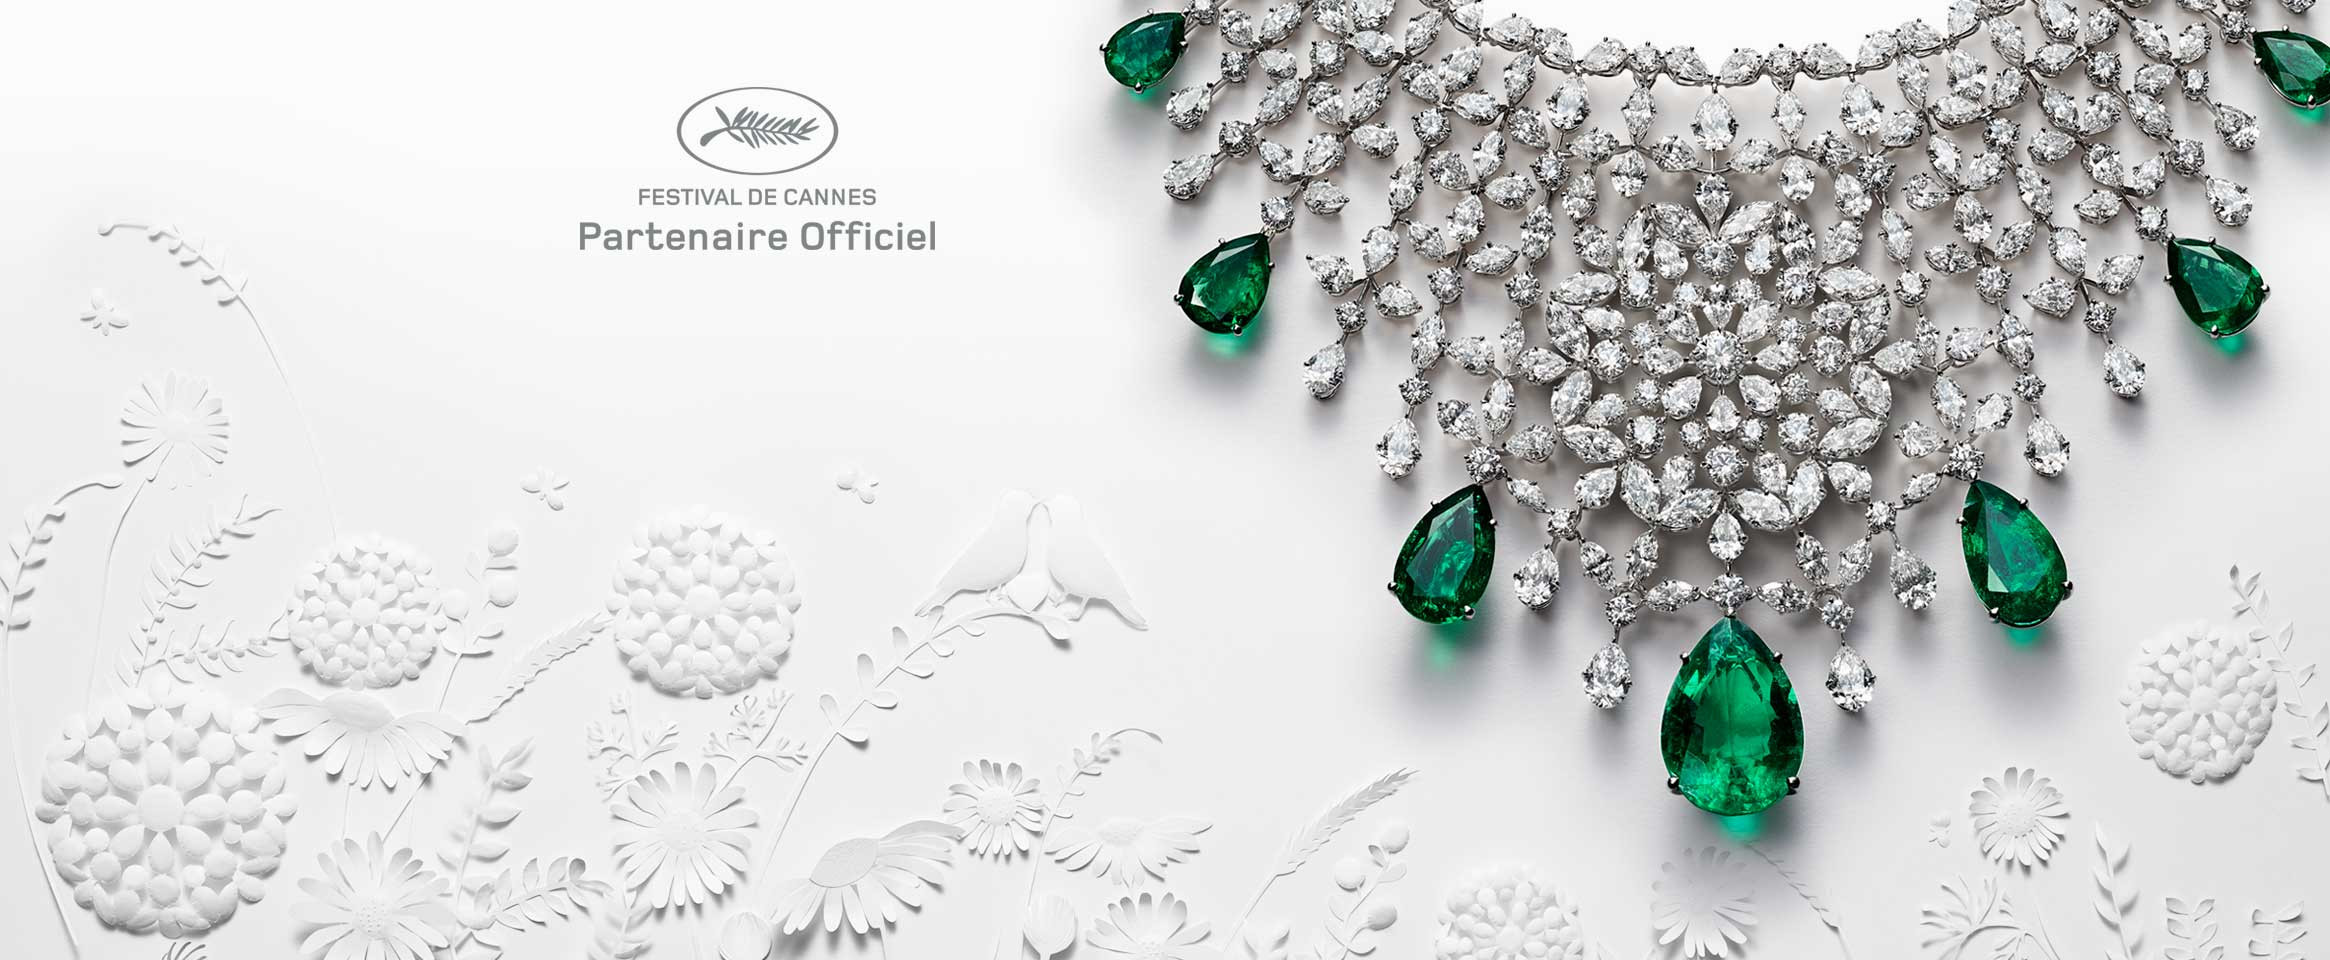 Chopard, </br> Partner Ufficiale del</br> Festival del Cinema di Cannes